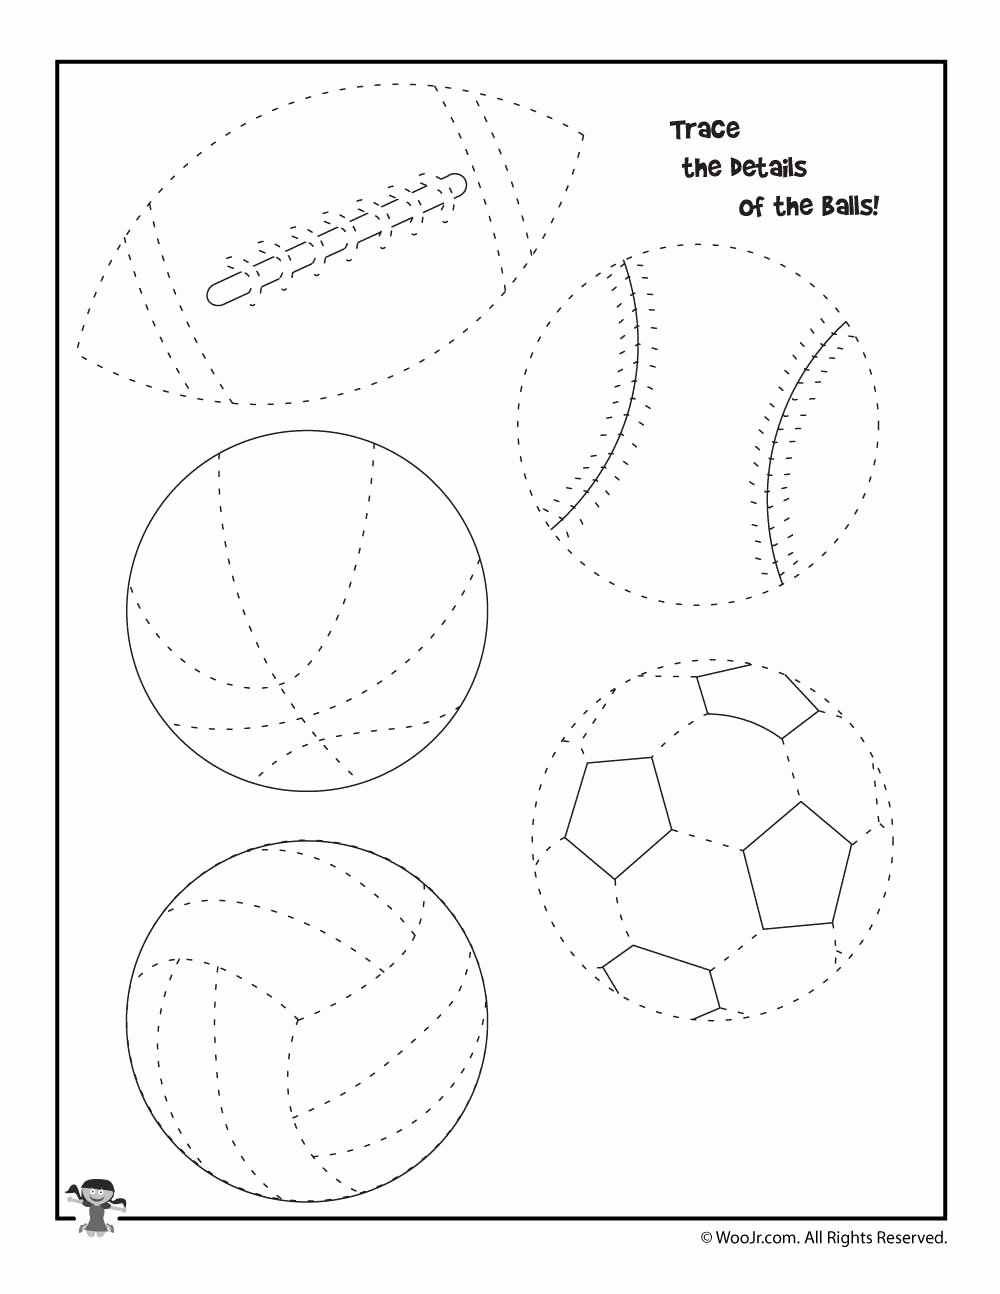 Sports Worksheets for Preschoolers Inspirational Summer Sports Tracing Worksheet